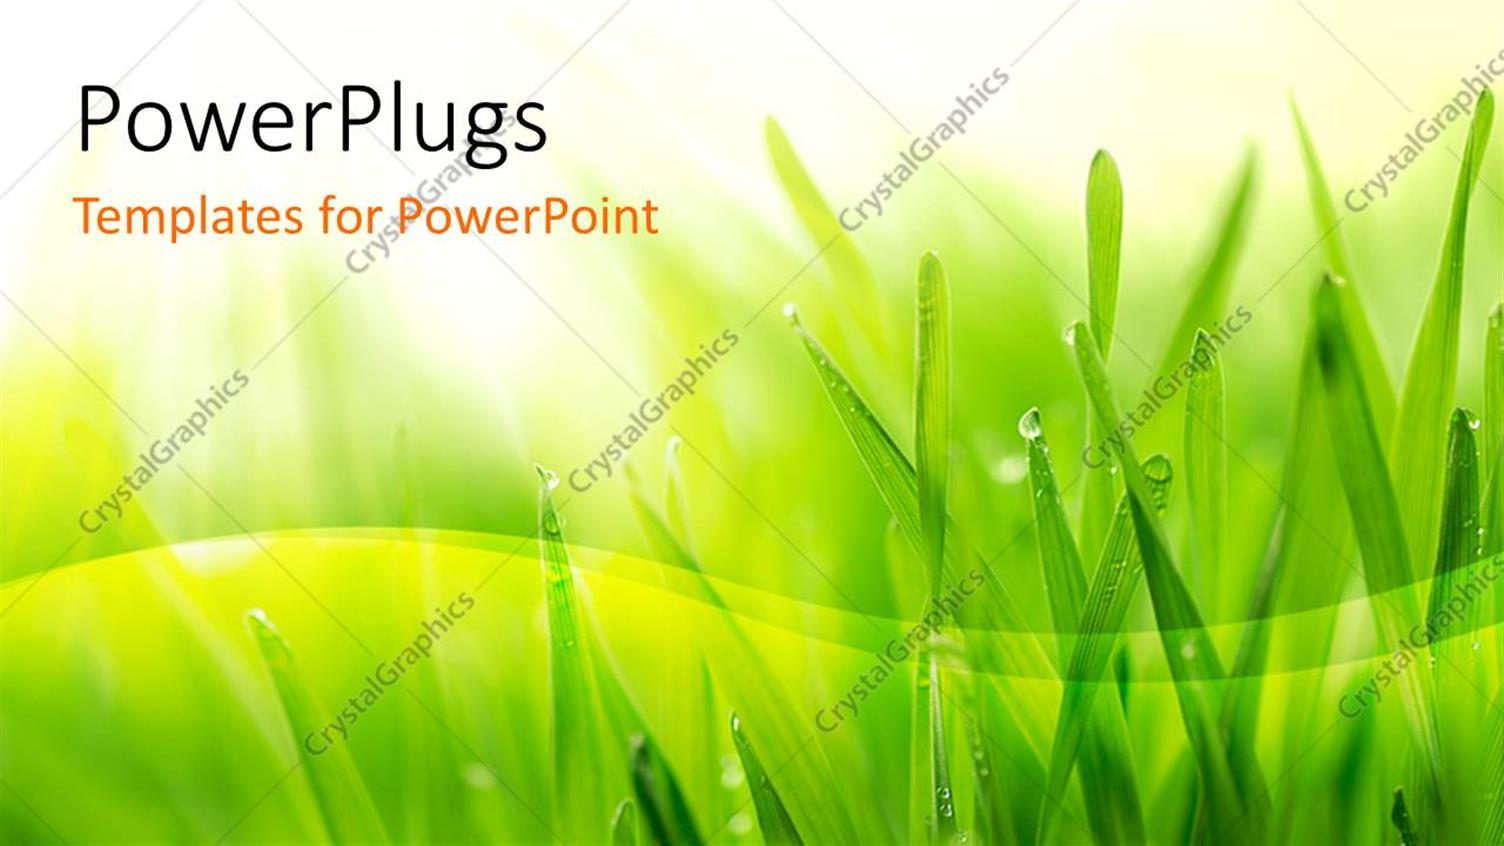 PowerPoint Template Displaying Close Up of Grass Covered with Morning Dew on Yellow and White Background